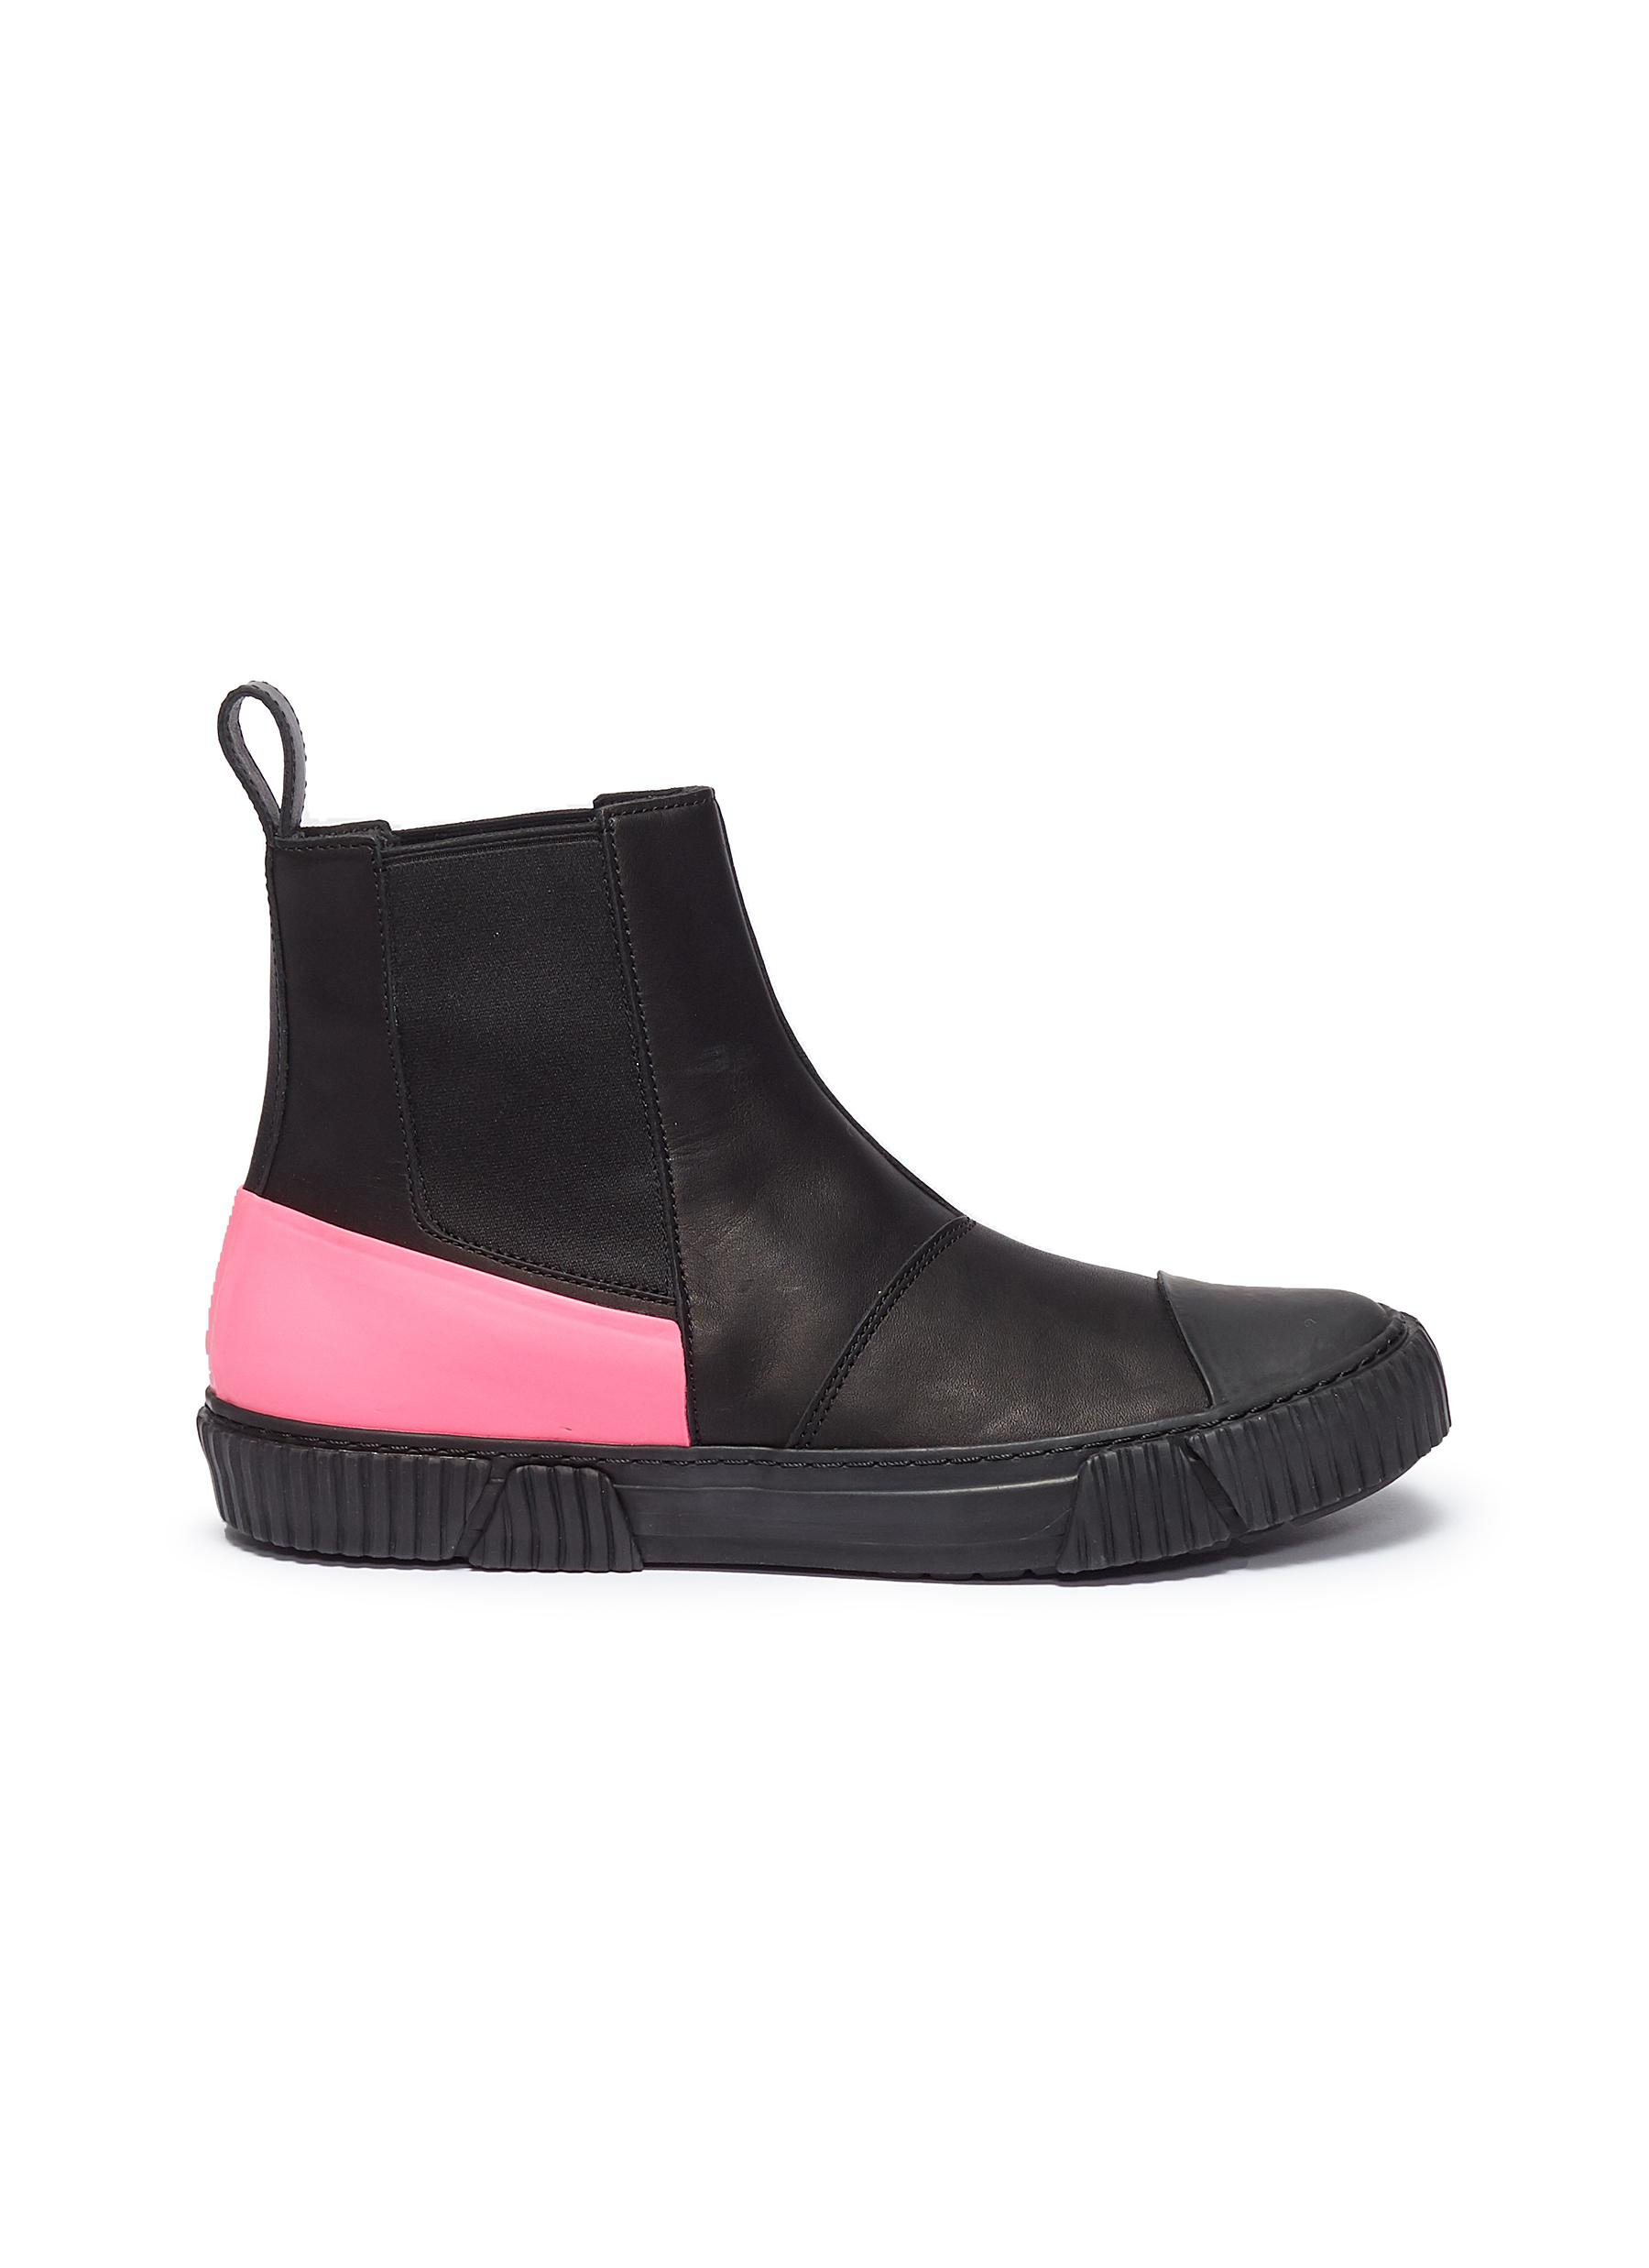 Colourblock rubber counter leather Chelsea sneaker boots by both